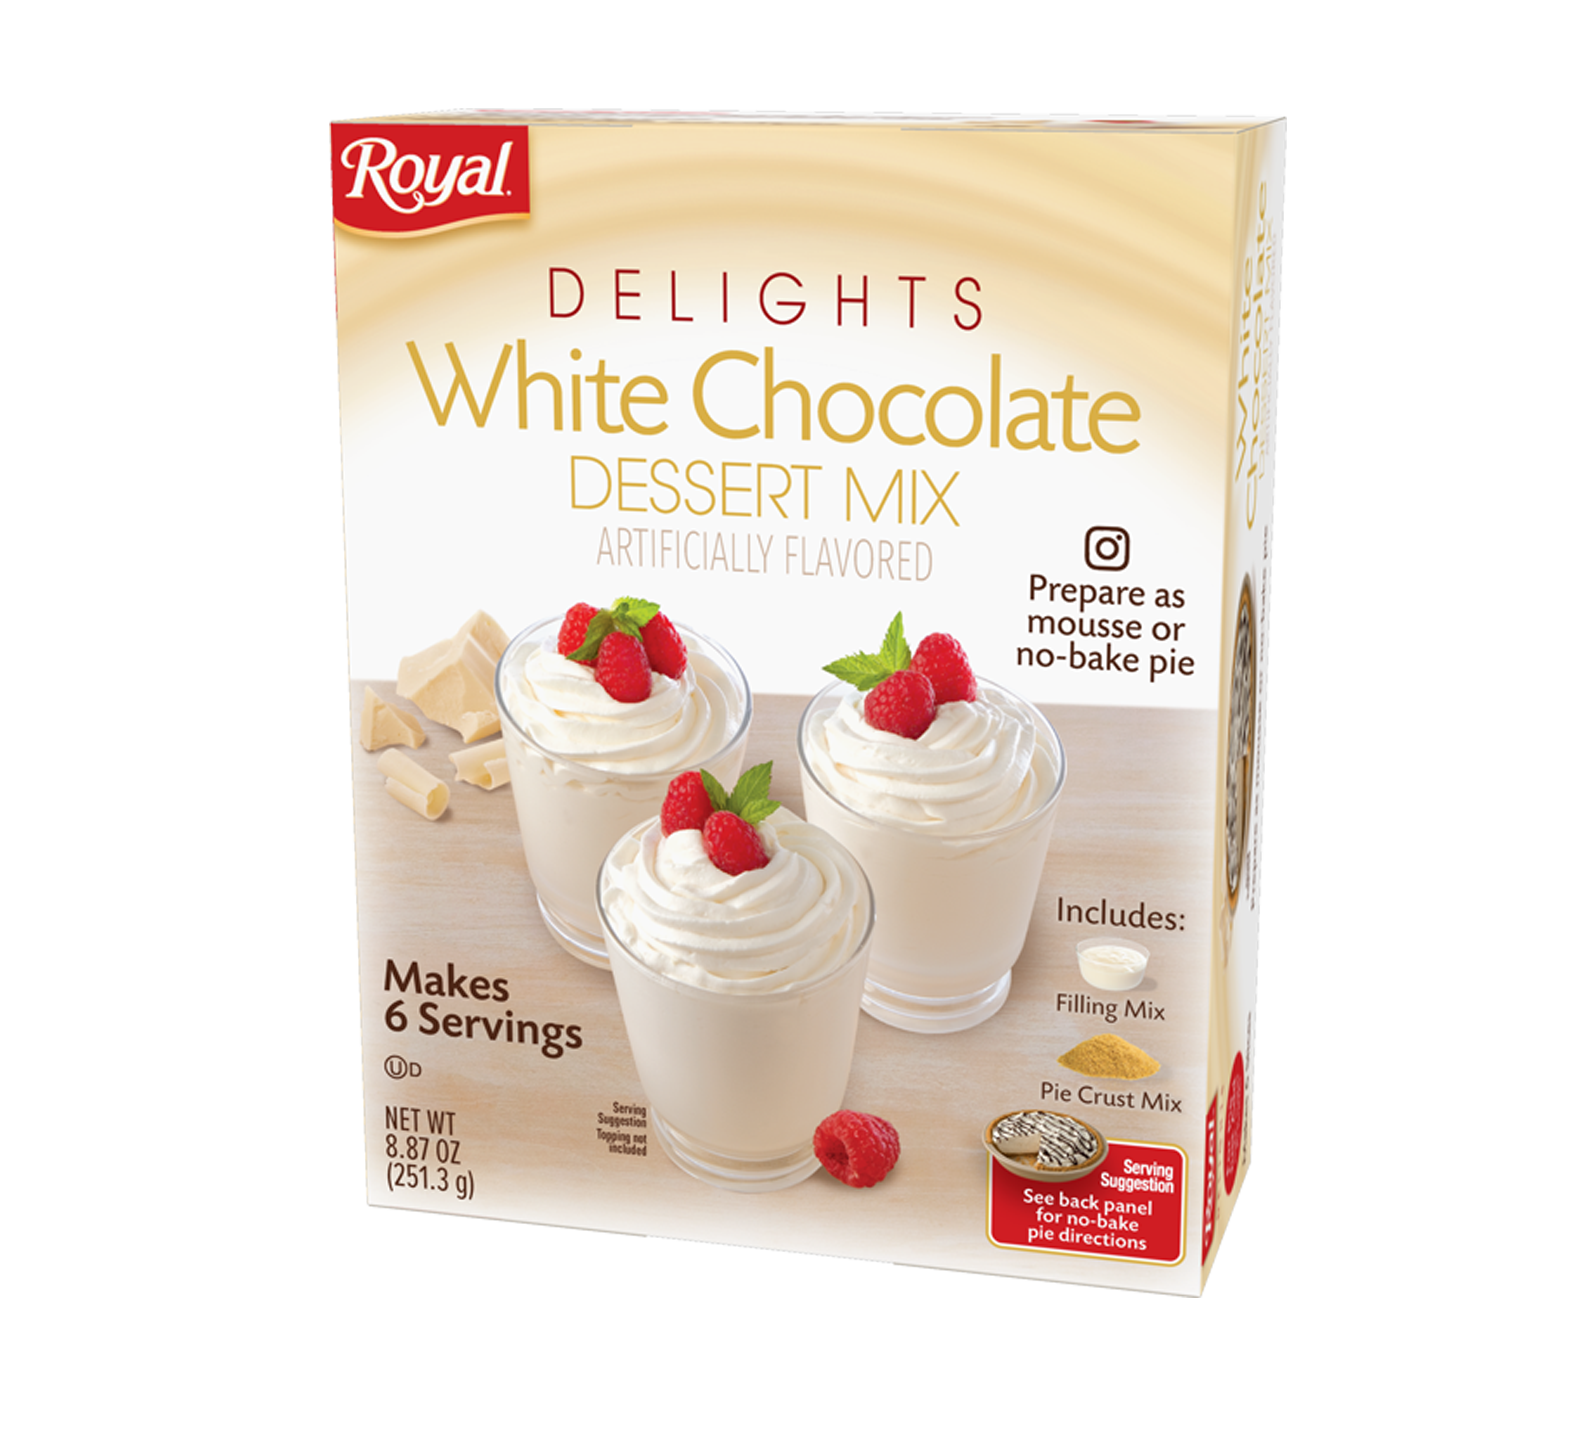 Royal Delights – White Chocolate Dessert Mix 8.87 oz